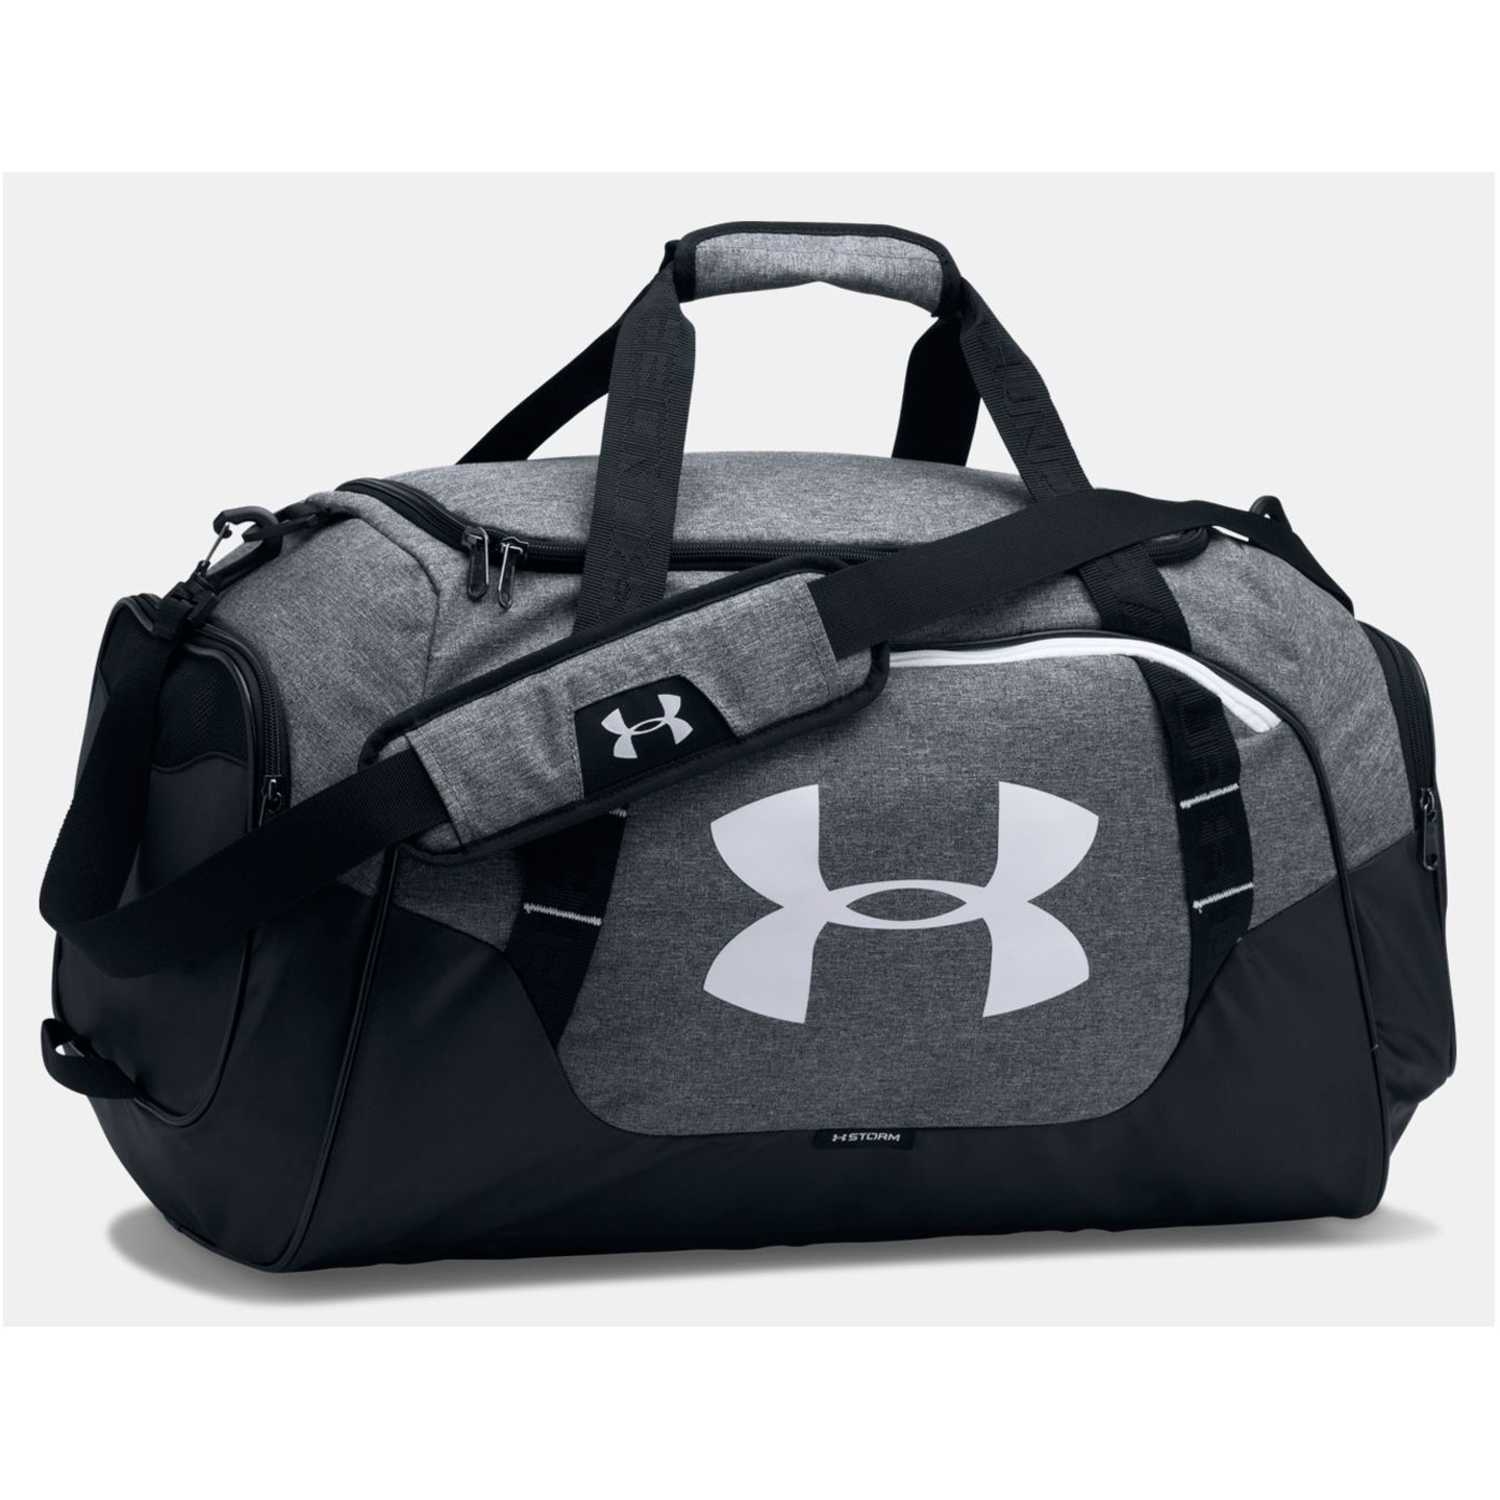 Under Armour ua undeniable duffle 3.0 md Gris / negro Duffels deportivos